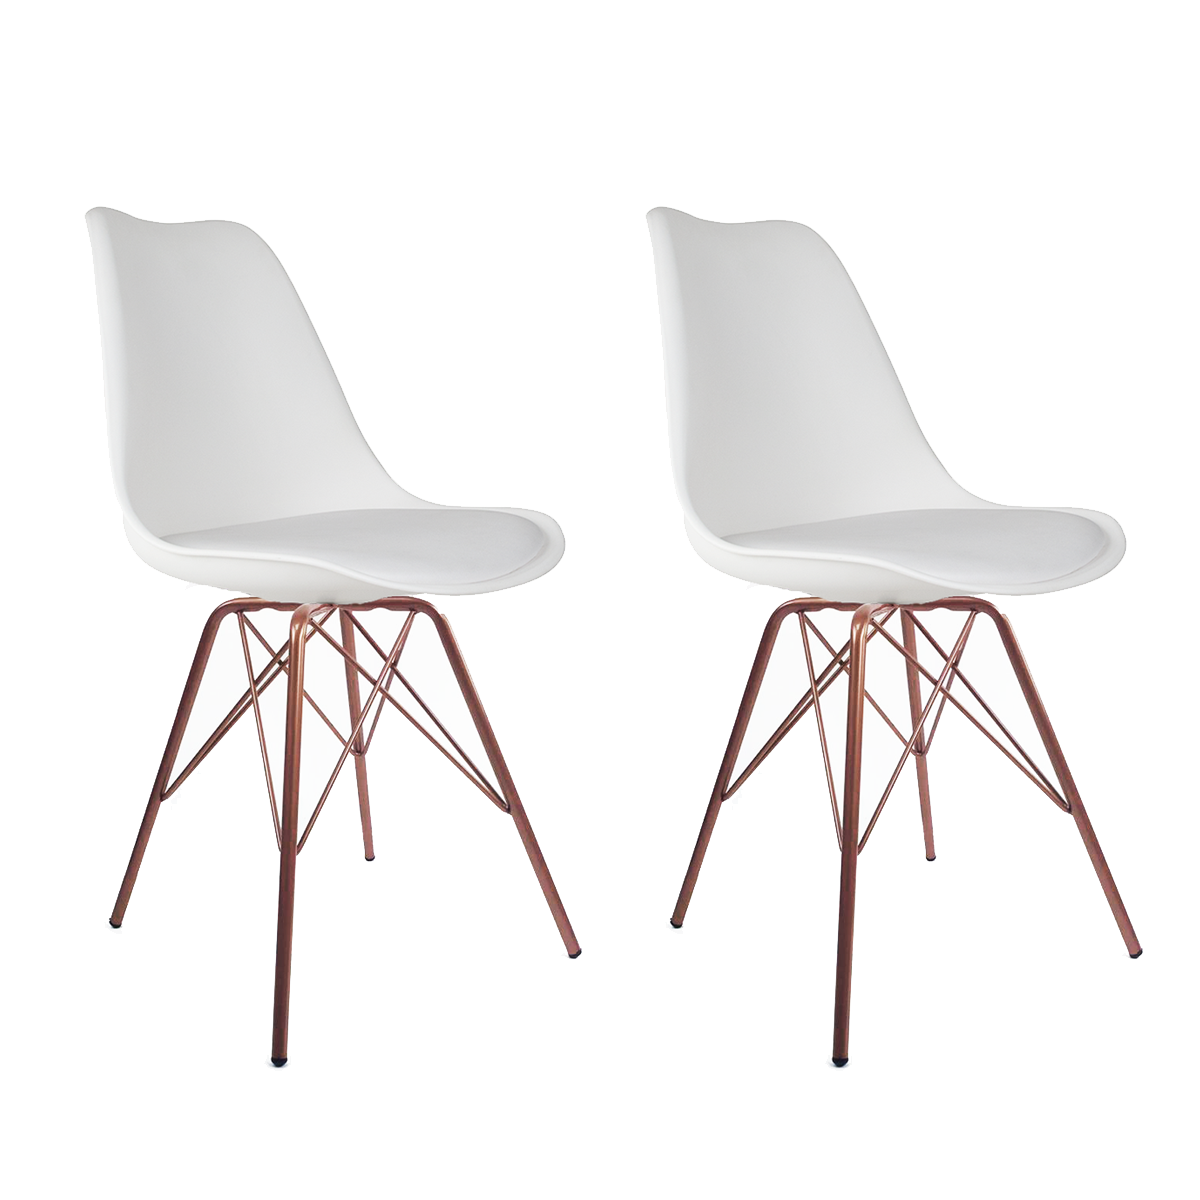 Conjunto com 2 Cadeiras Saarinen Branca - Base Tower Cobre